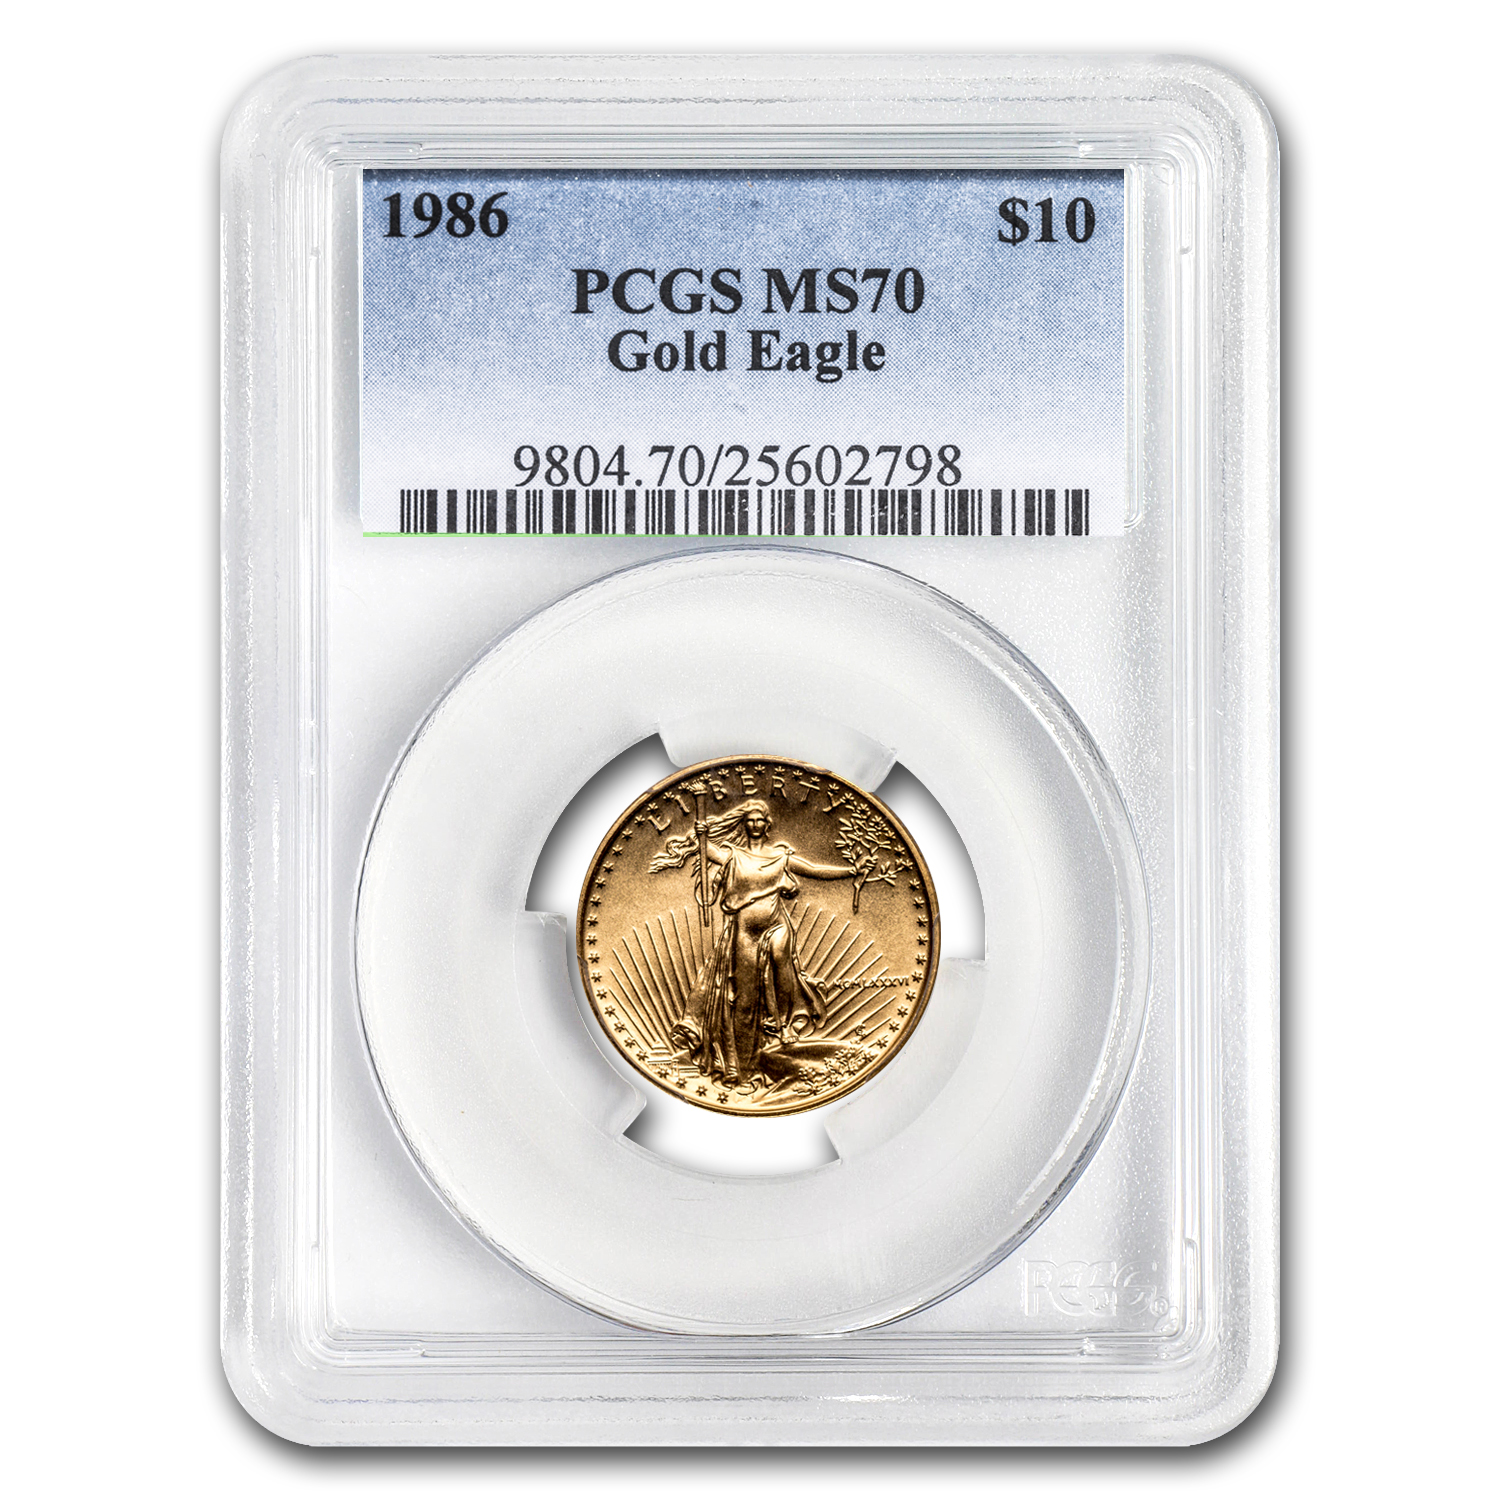 1986 1/4 oz Gold American Eagle MS-70 PCGS